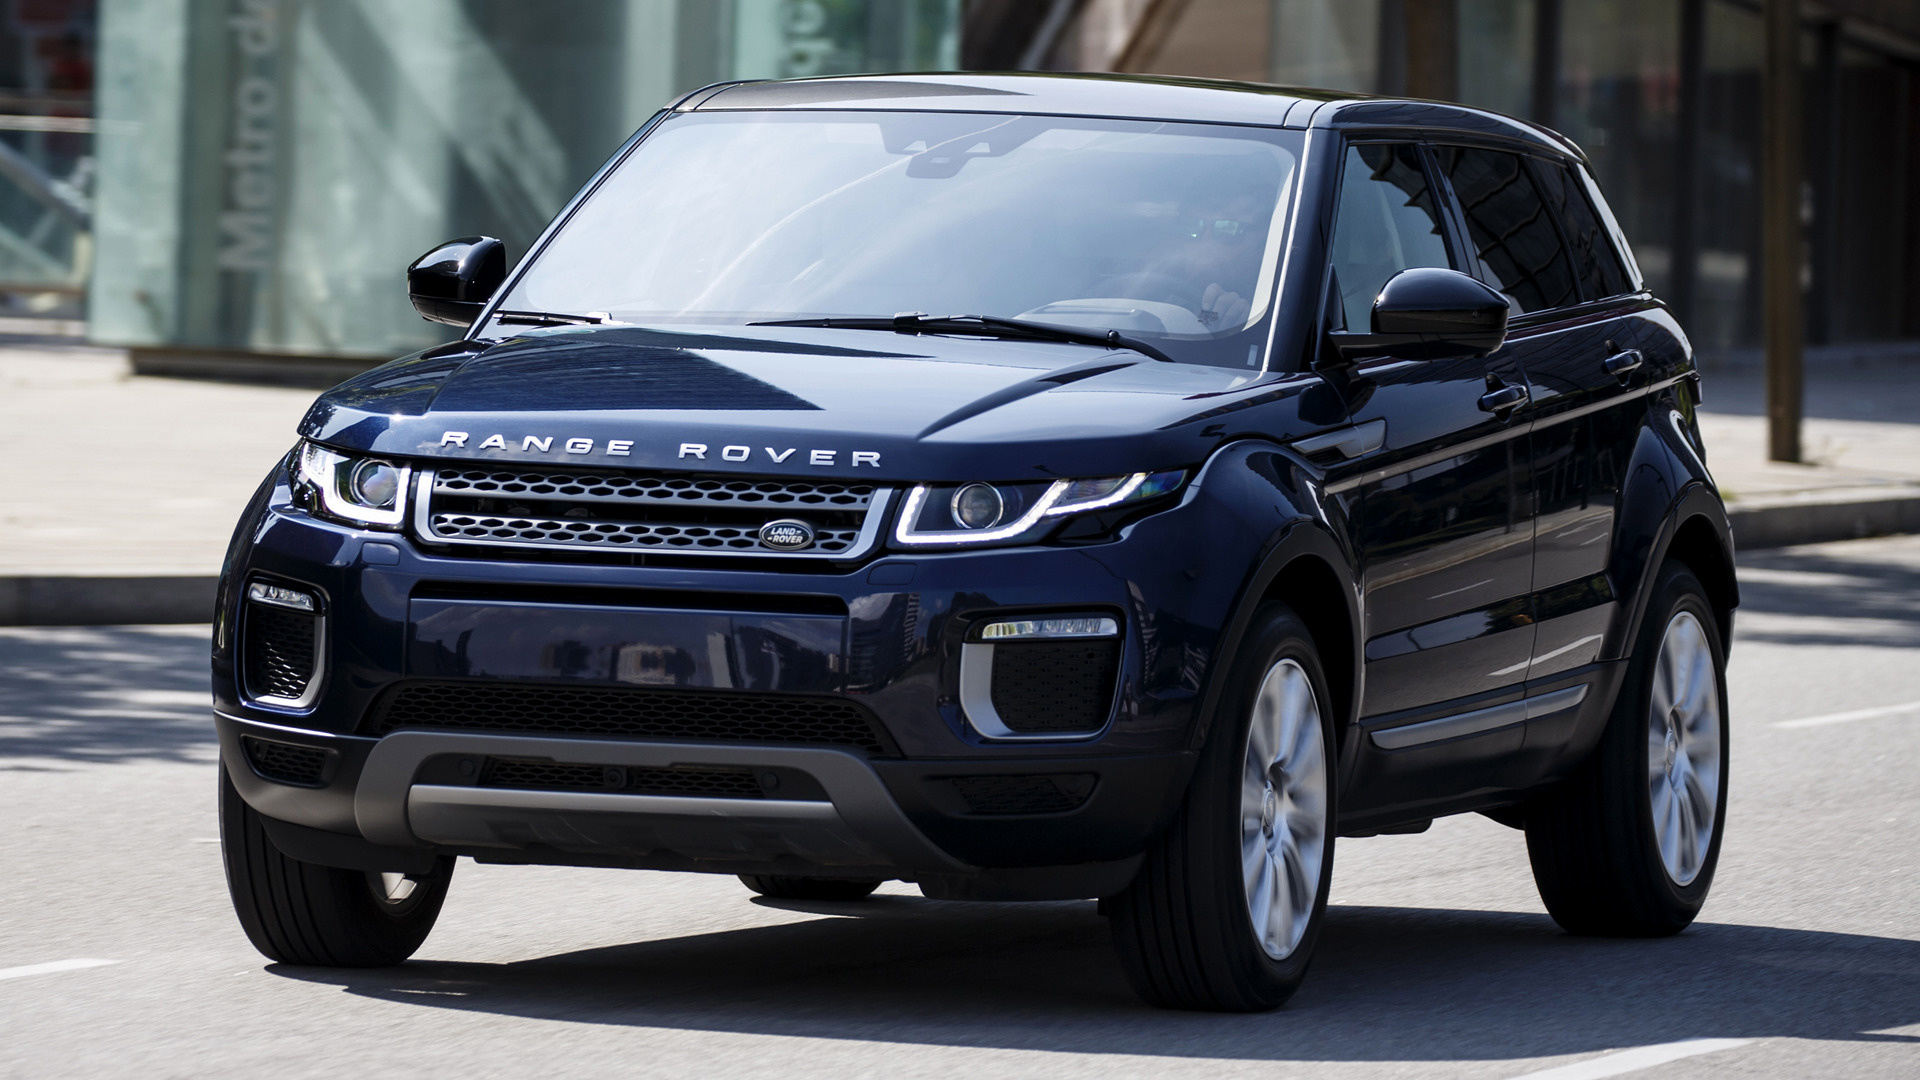 Land Rover Range Rover >> 2015 Range Rover Evoque - Wallpapers and HD Images | Car Pixel